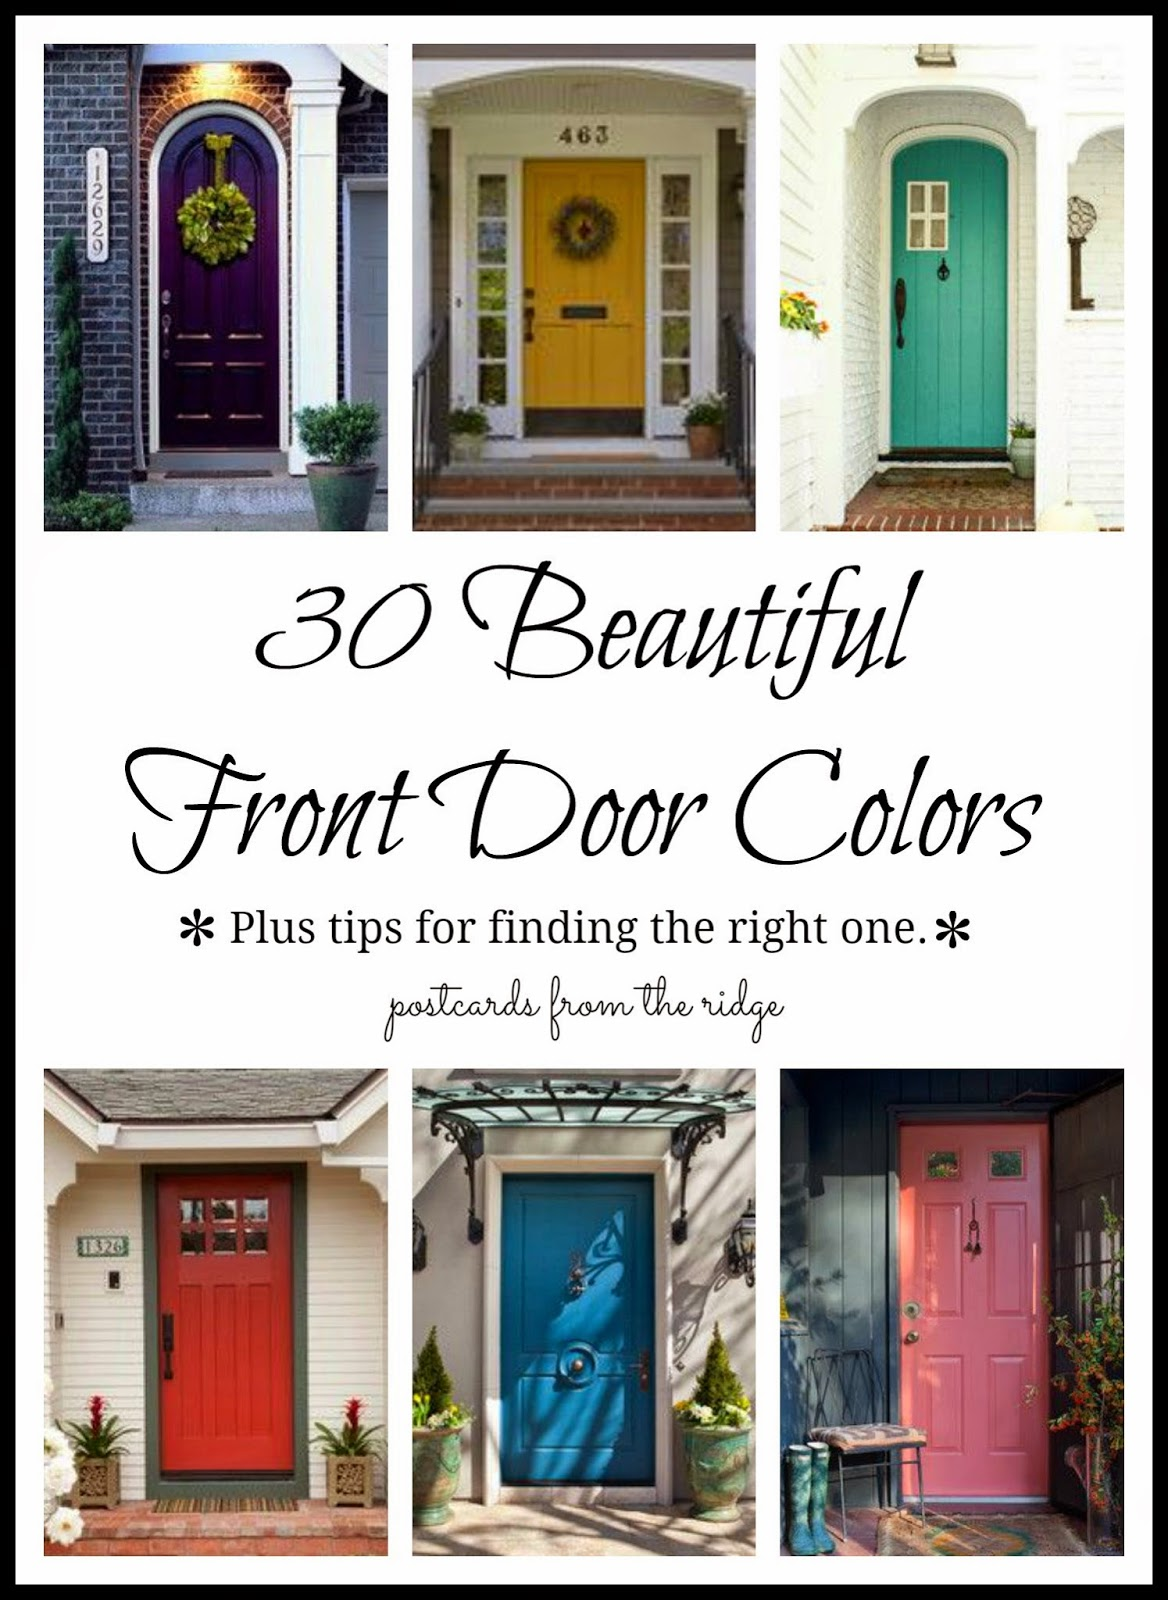 Painted Front Door Ideas 30 front door colors with tips for choosing the right one